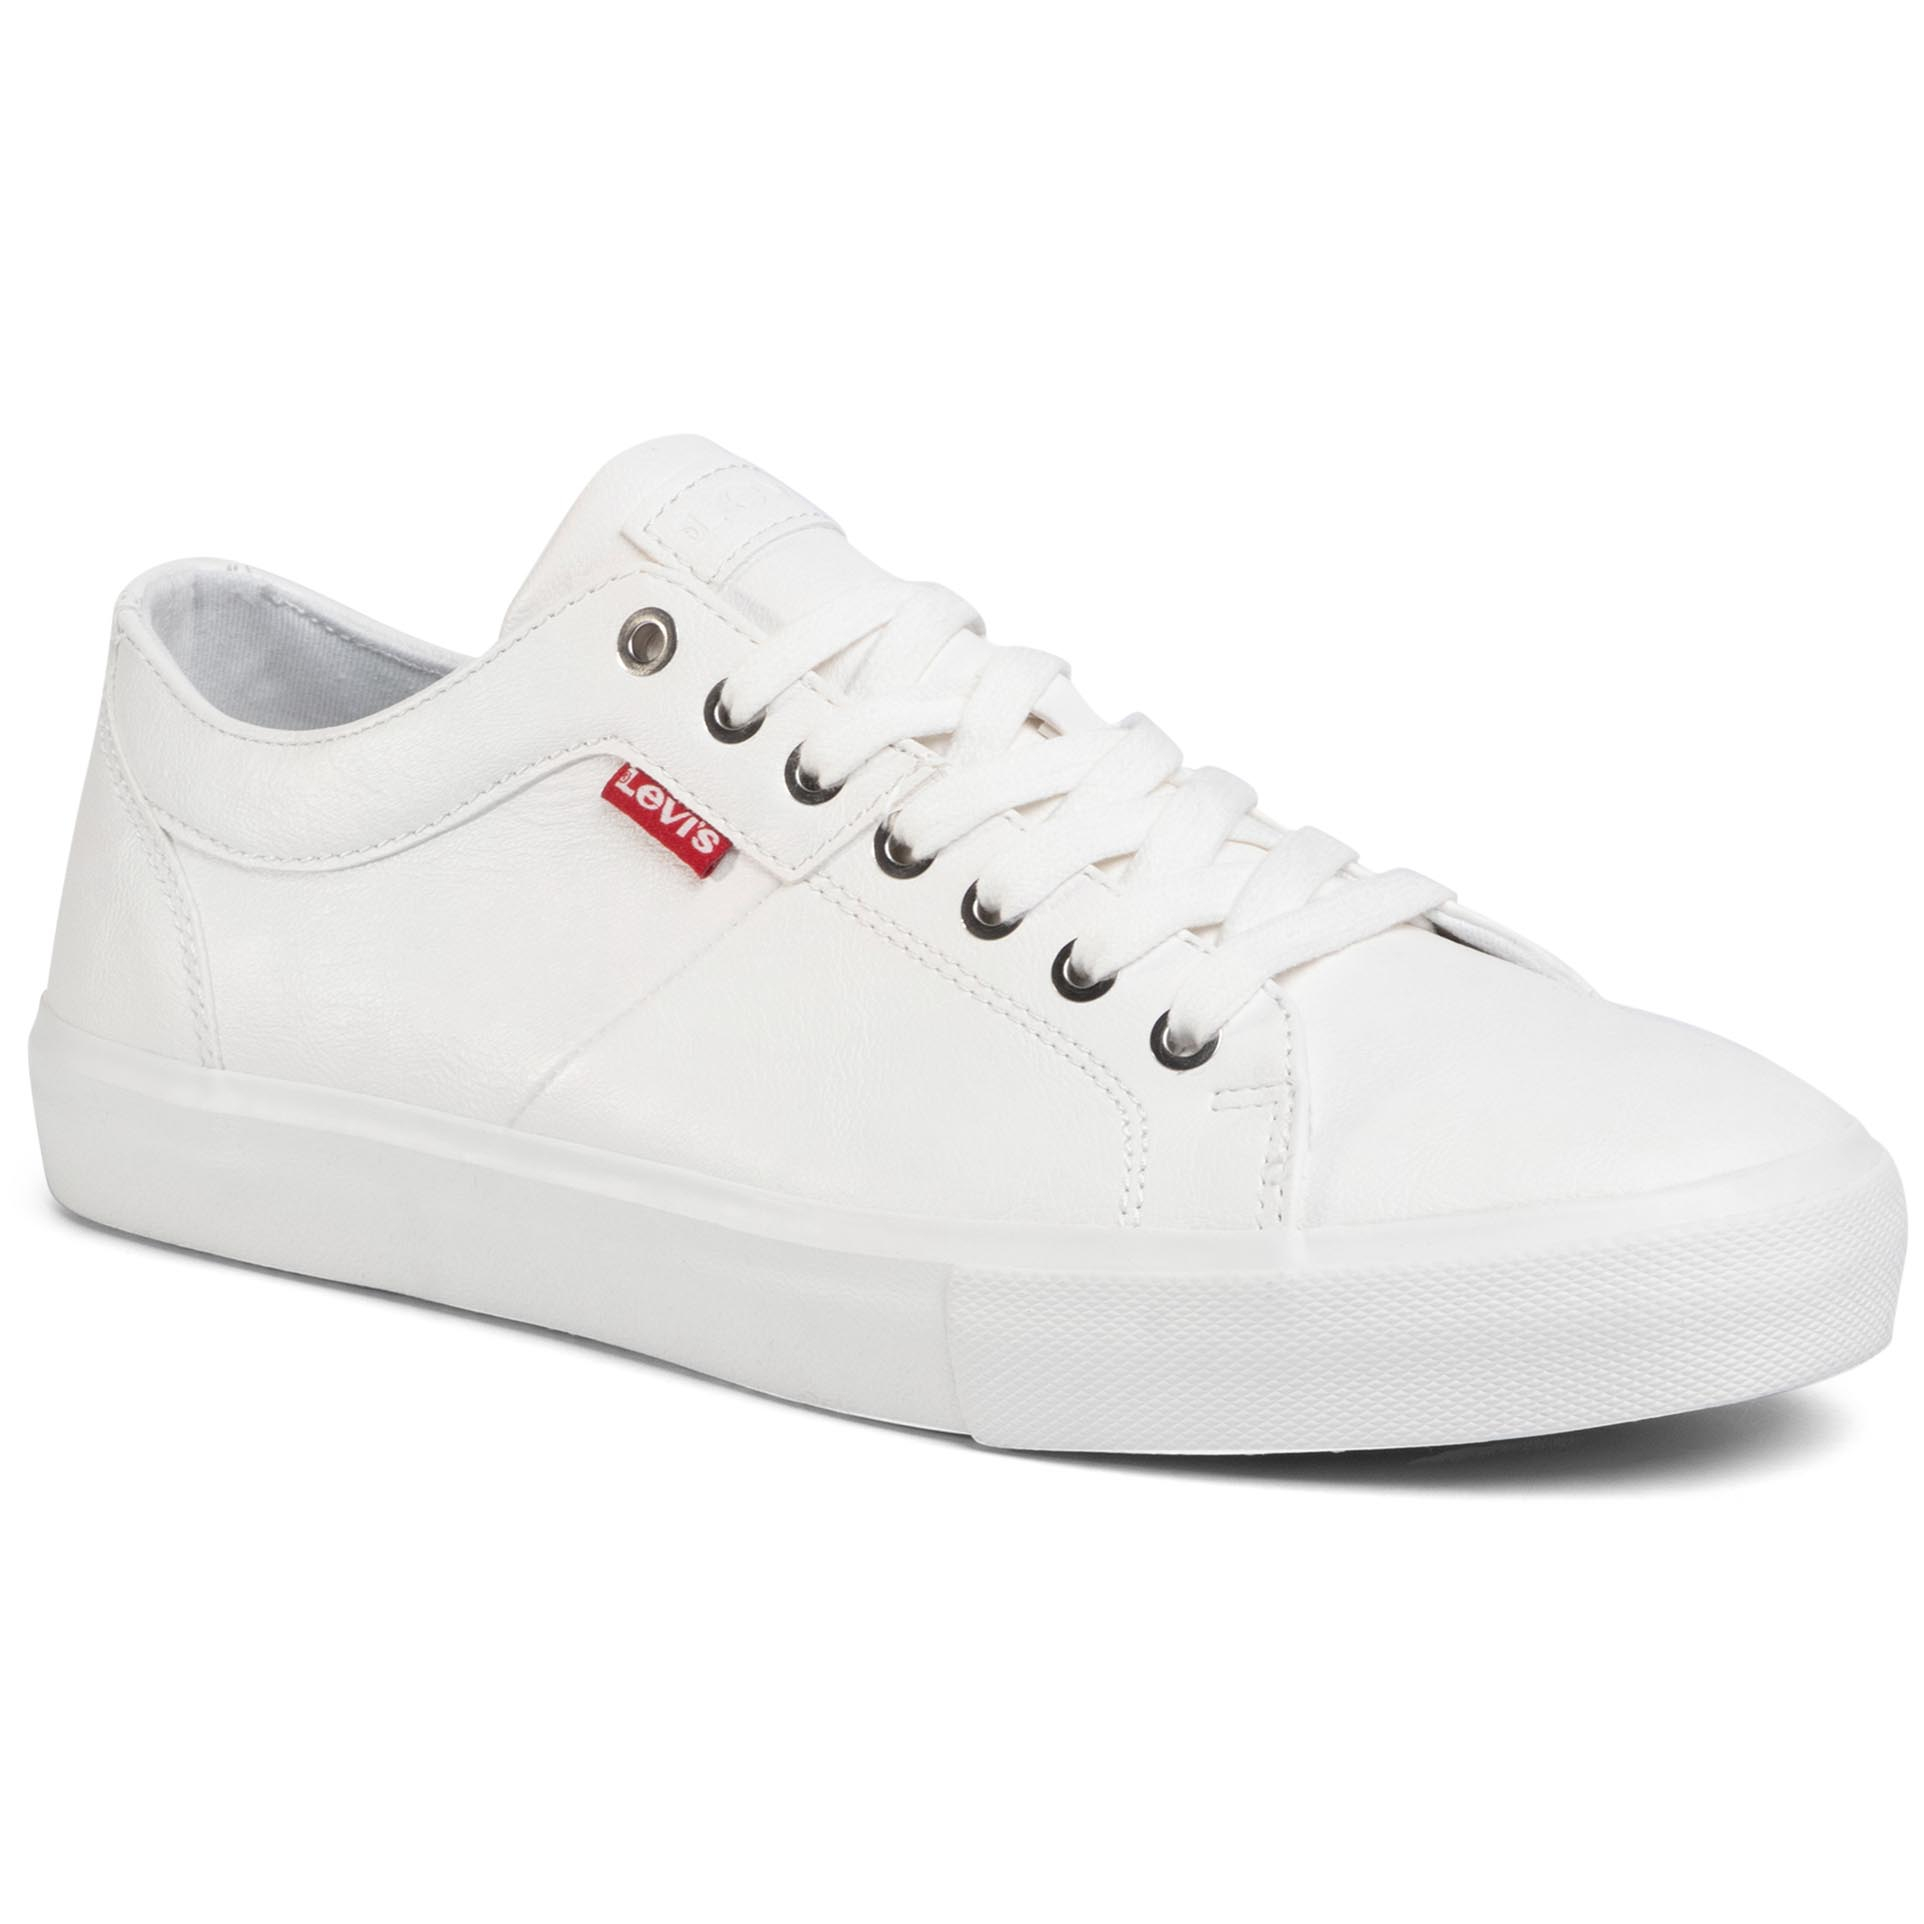 Teniși Levi's - 231571-794-51 Regular White imagine epantofi.ro 2021